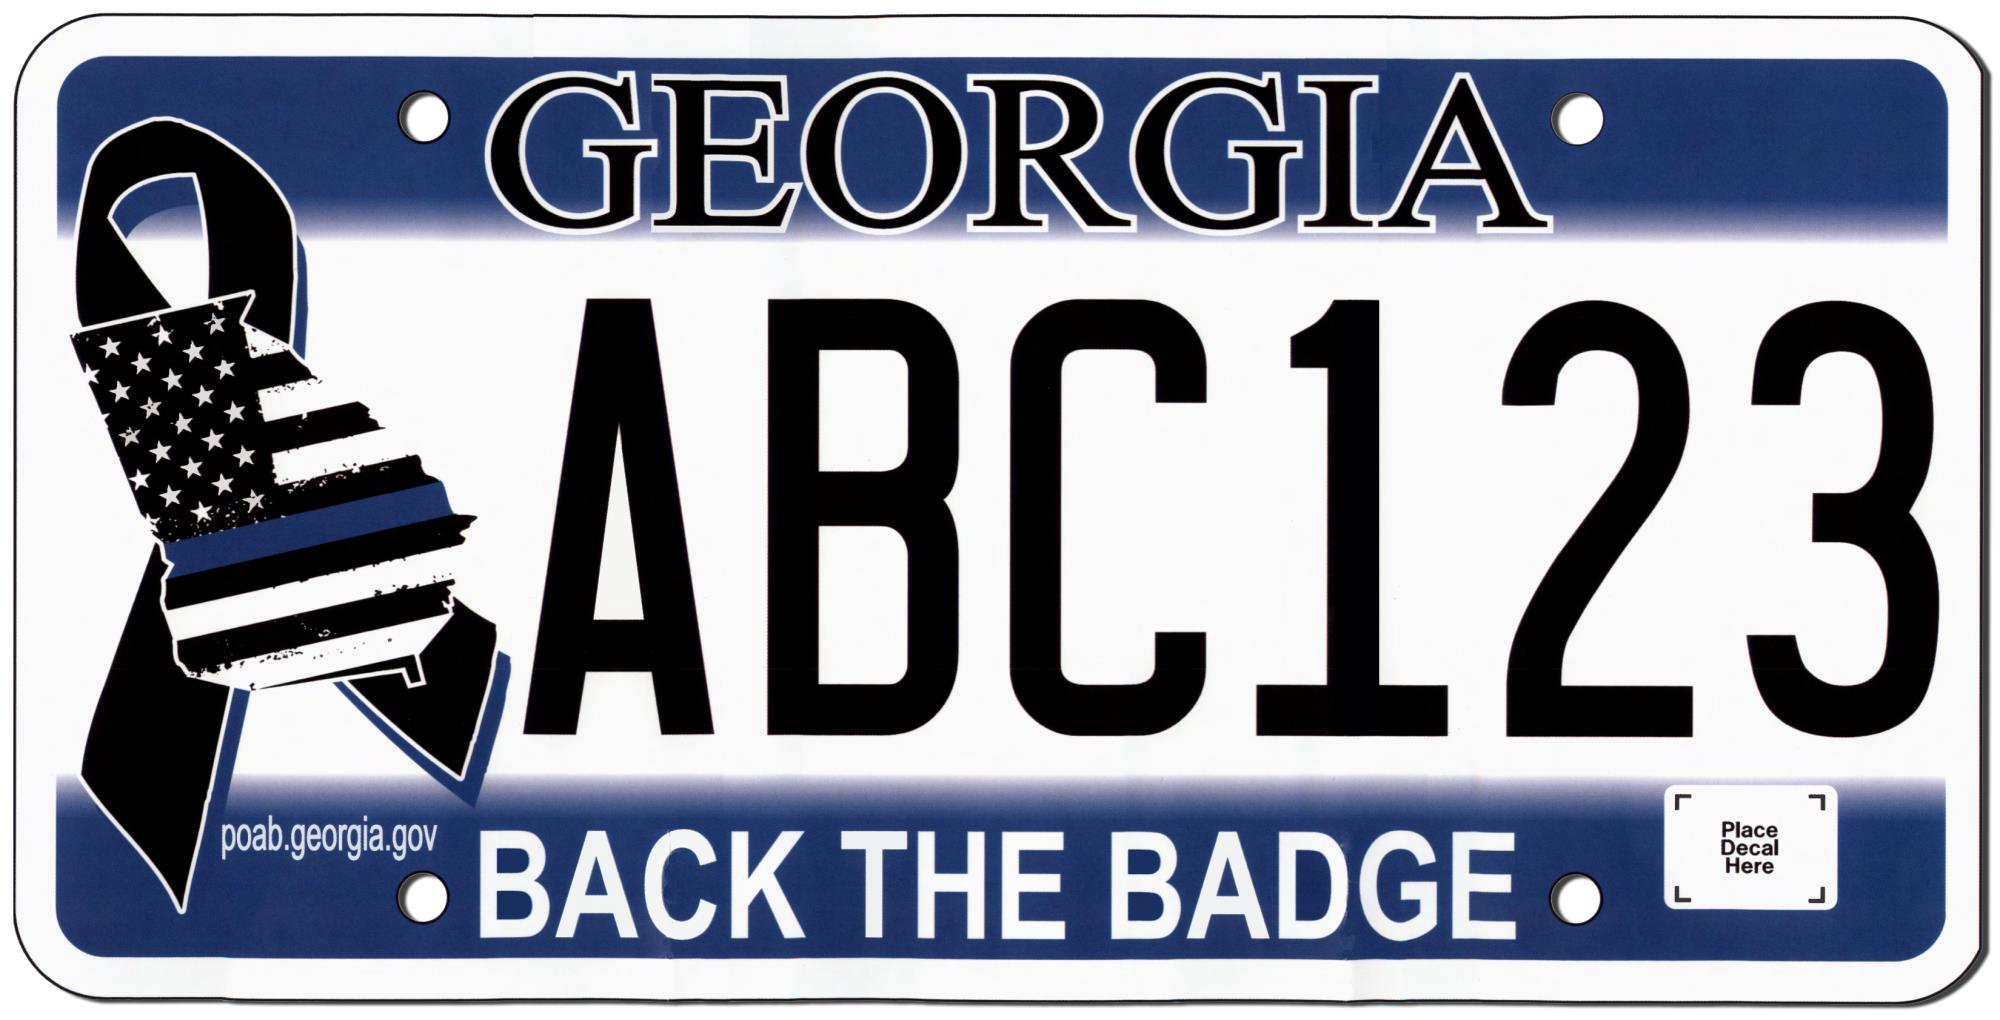 back the badge license plate now available at your tag office